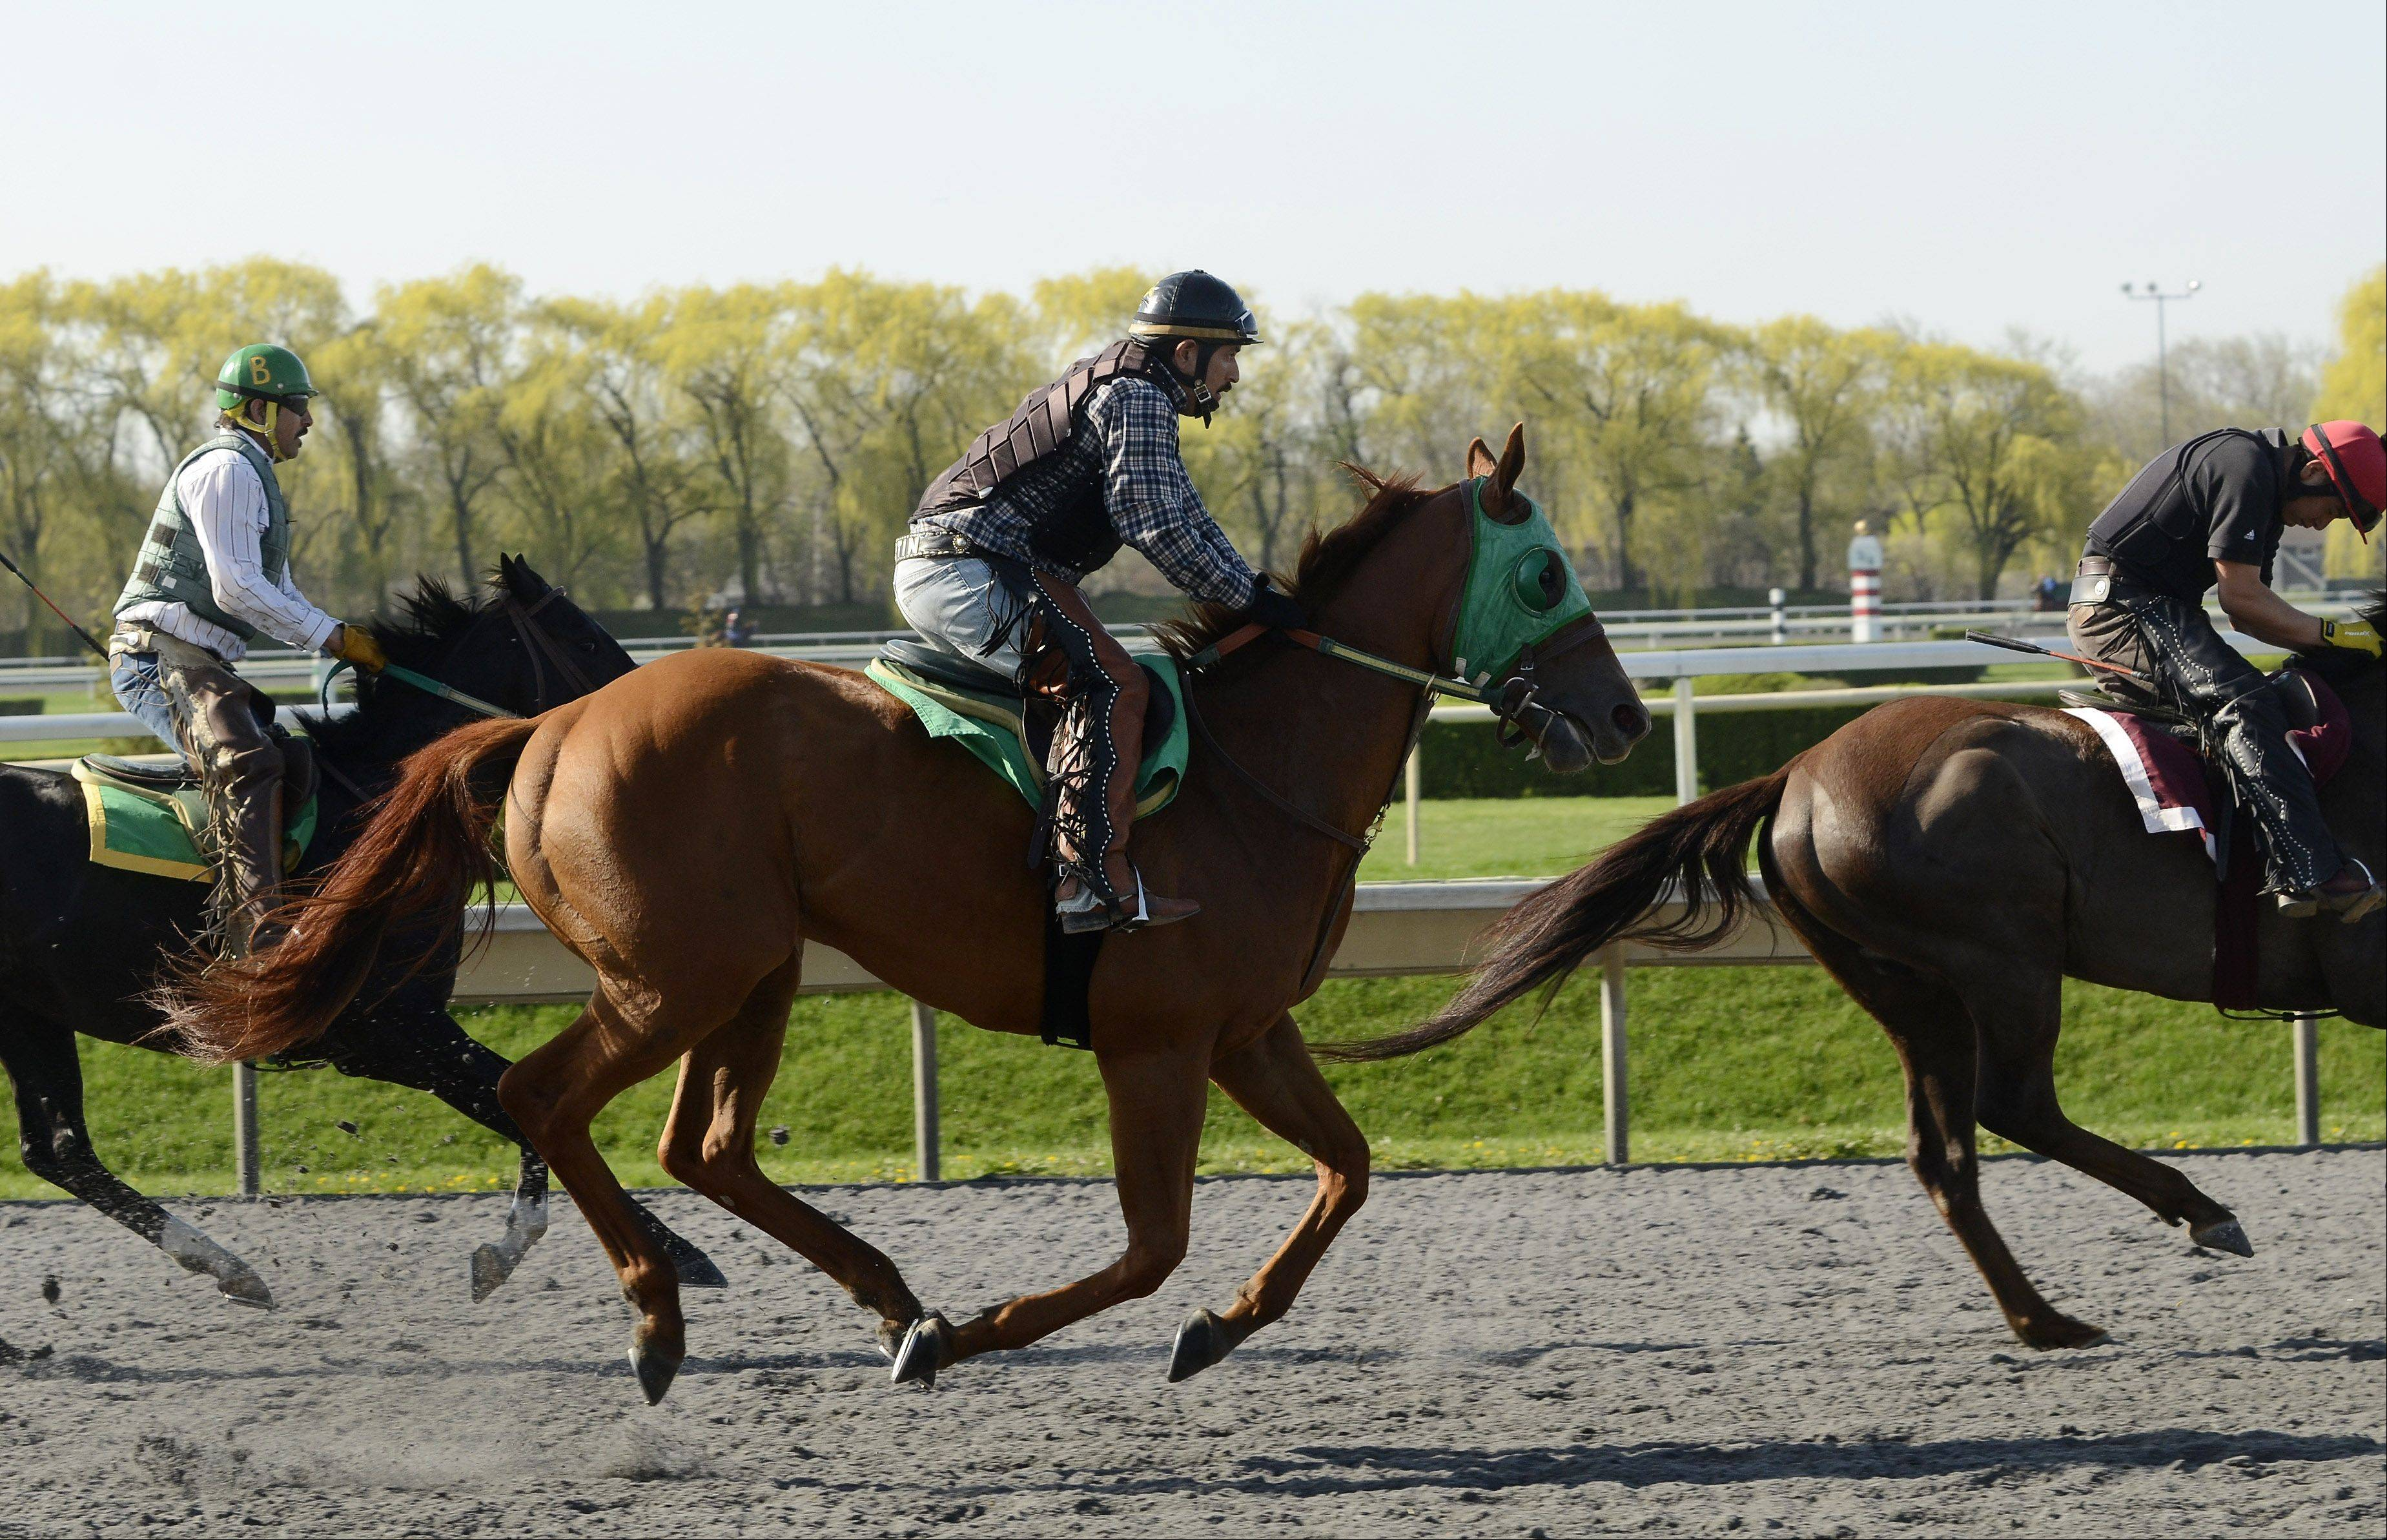 Horses take to the track in preparation for Arlington International's new season. The track will offer live racing four days a week through September.